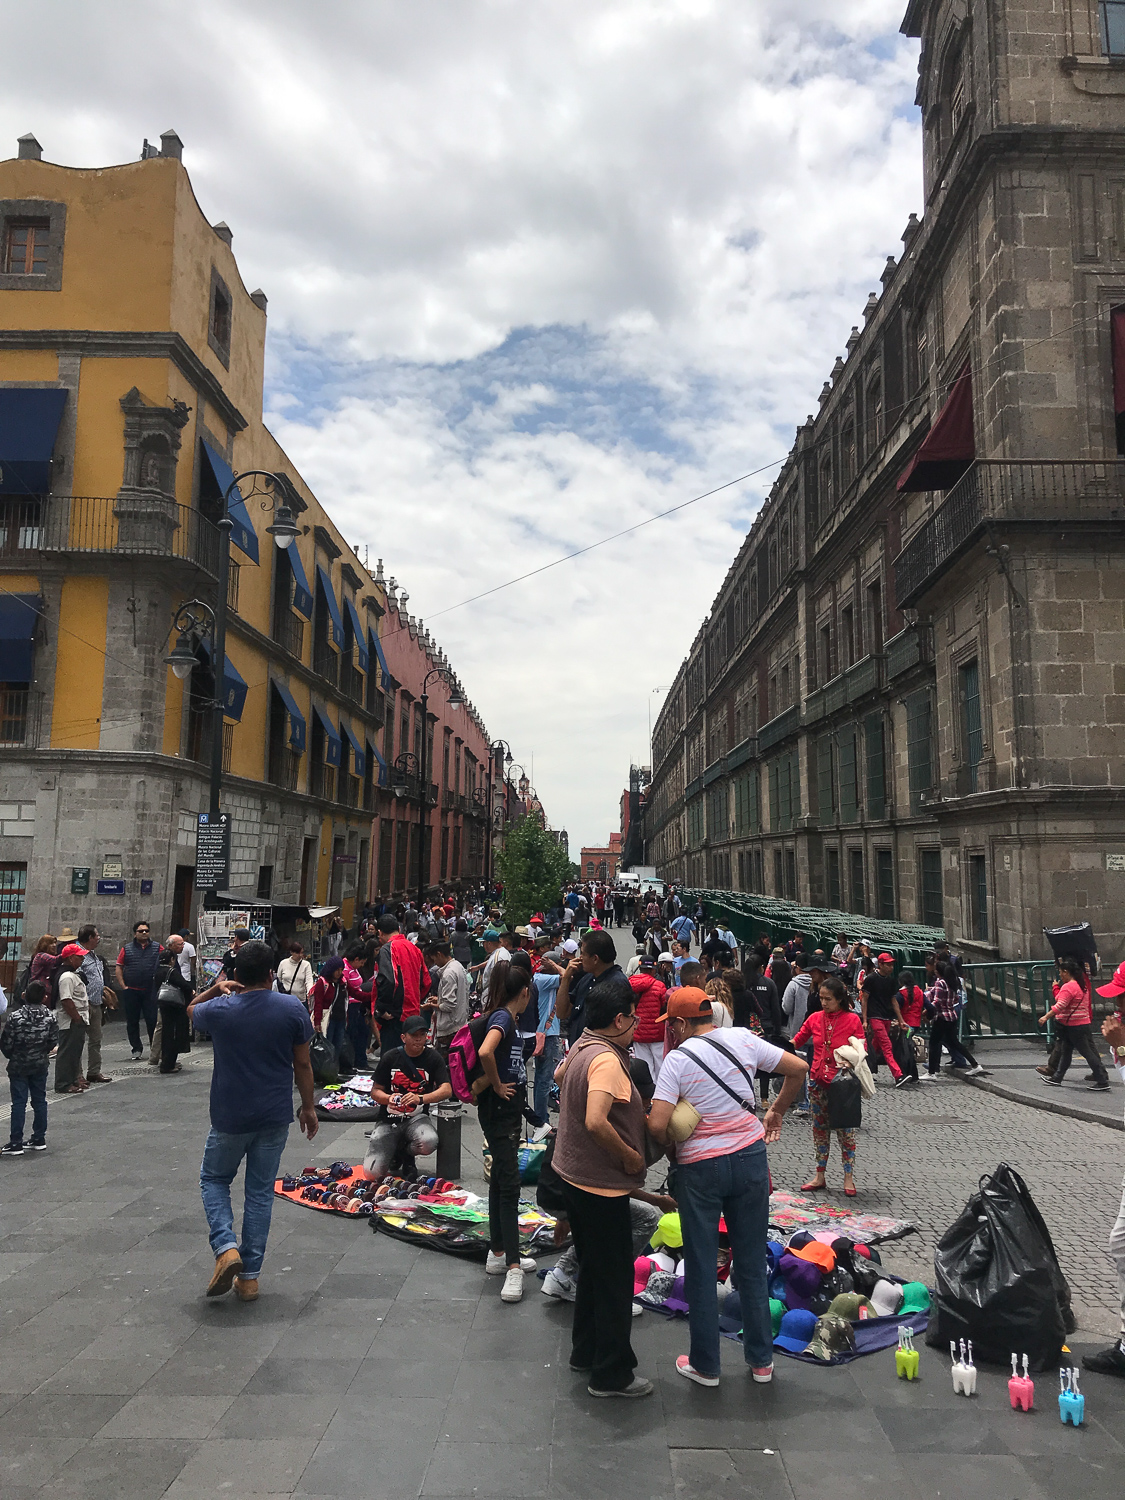 Public spaces were also thriving with vendors. In Mexico City, for example, certain streets were designated for vending (similar to an idea floated in Los Angeles to create special vending districts).